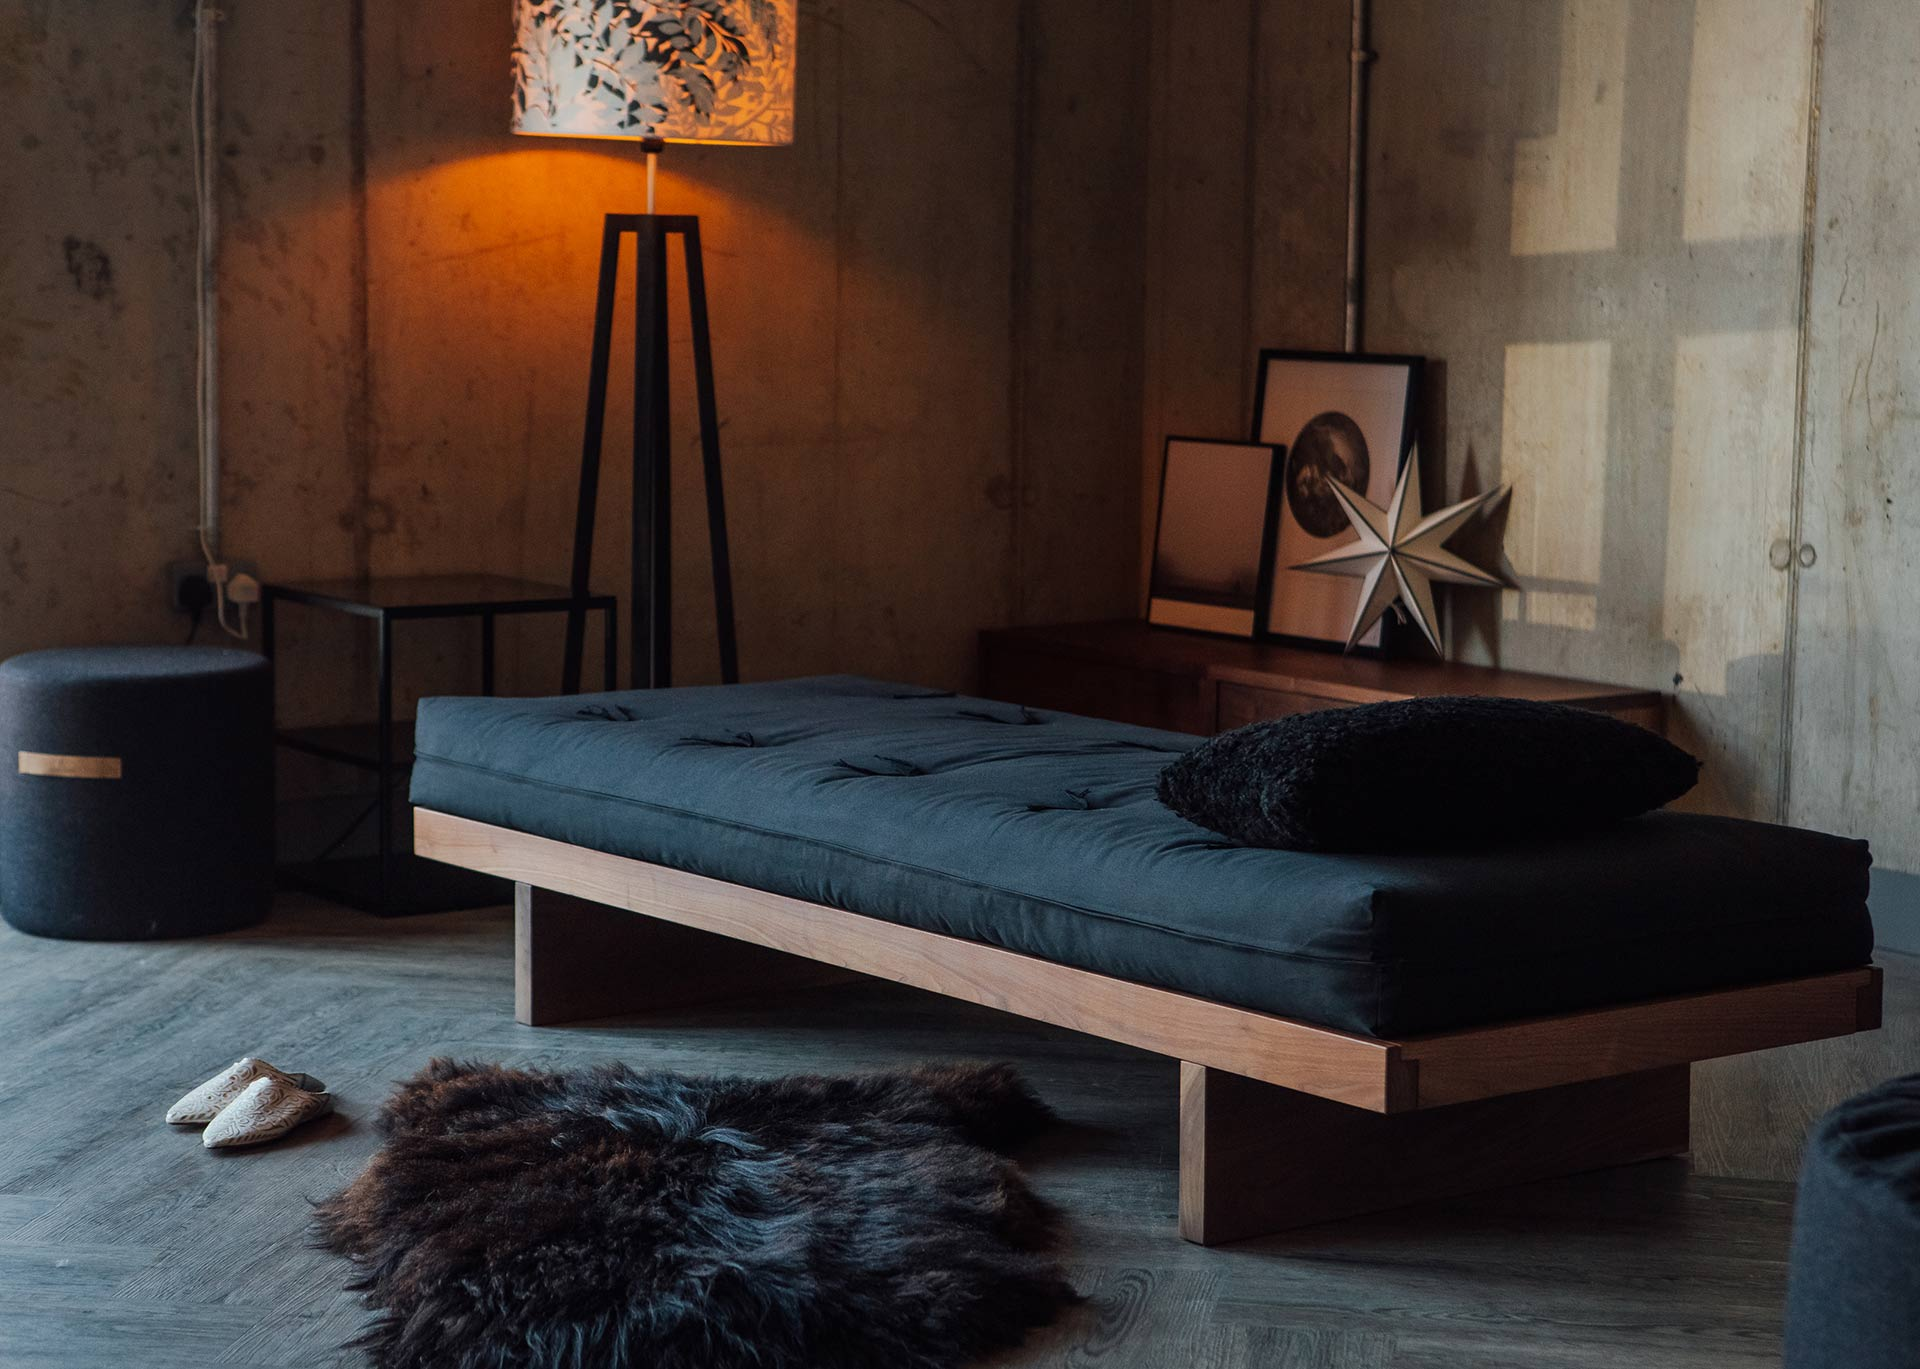 A Scandinavian inspired room setting for our Kyoto futon day-bed made in solid walnut wood